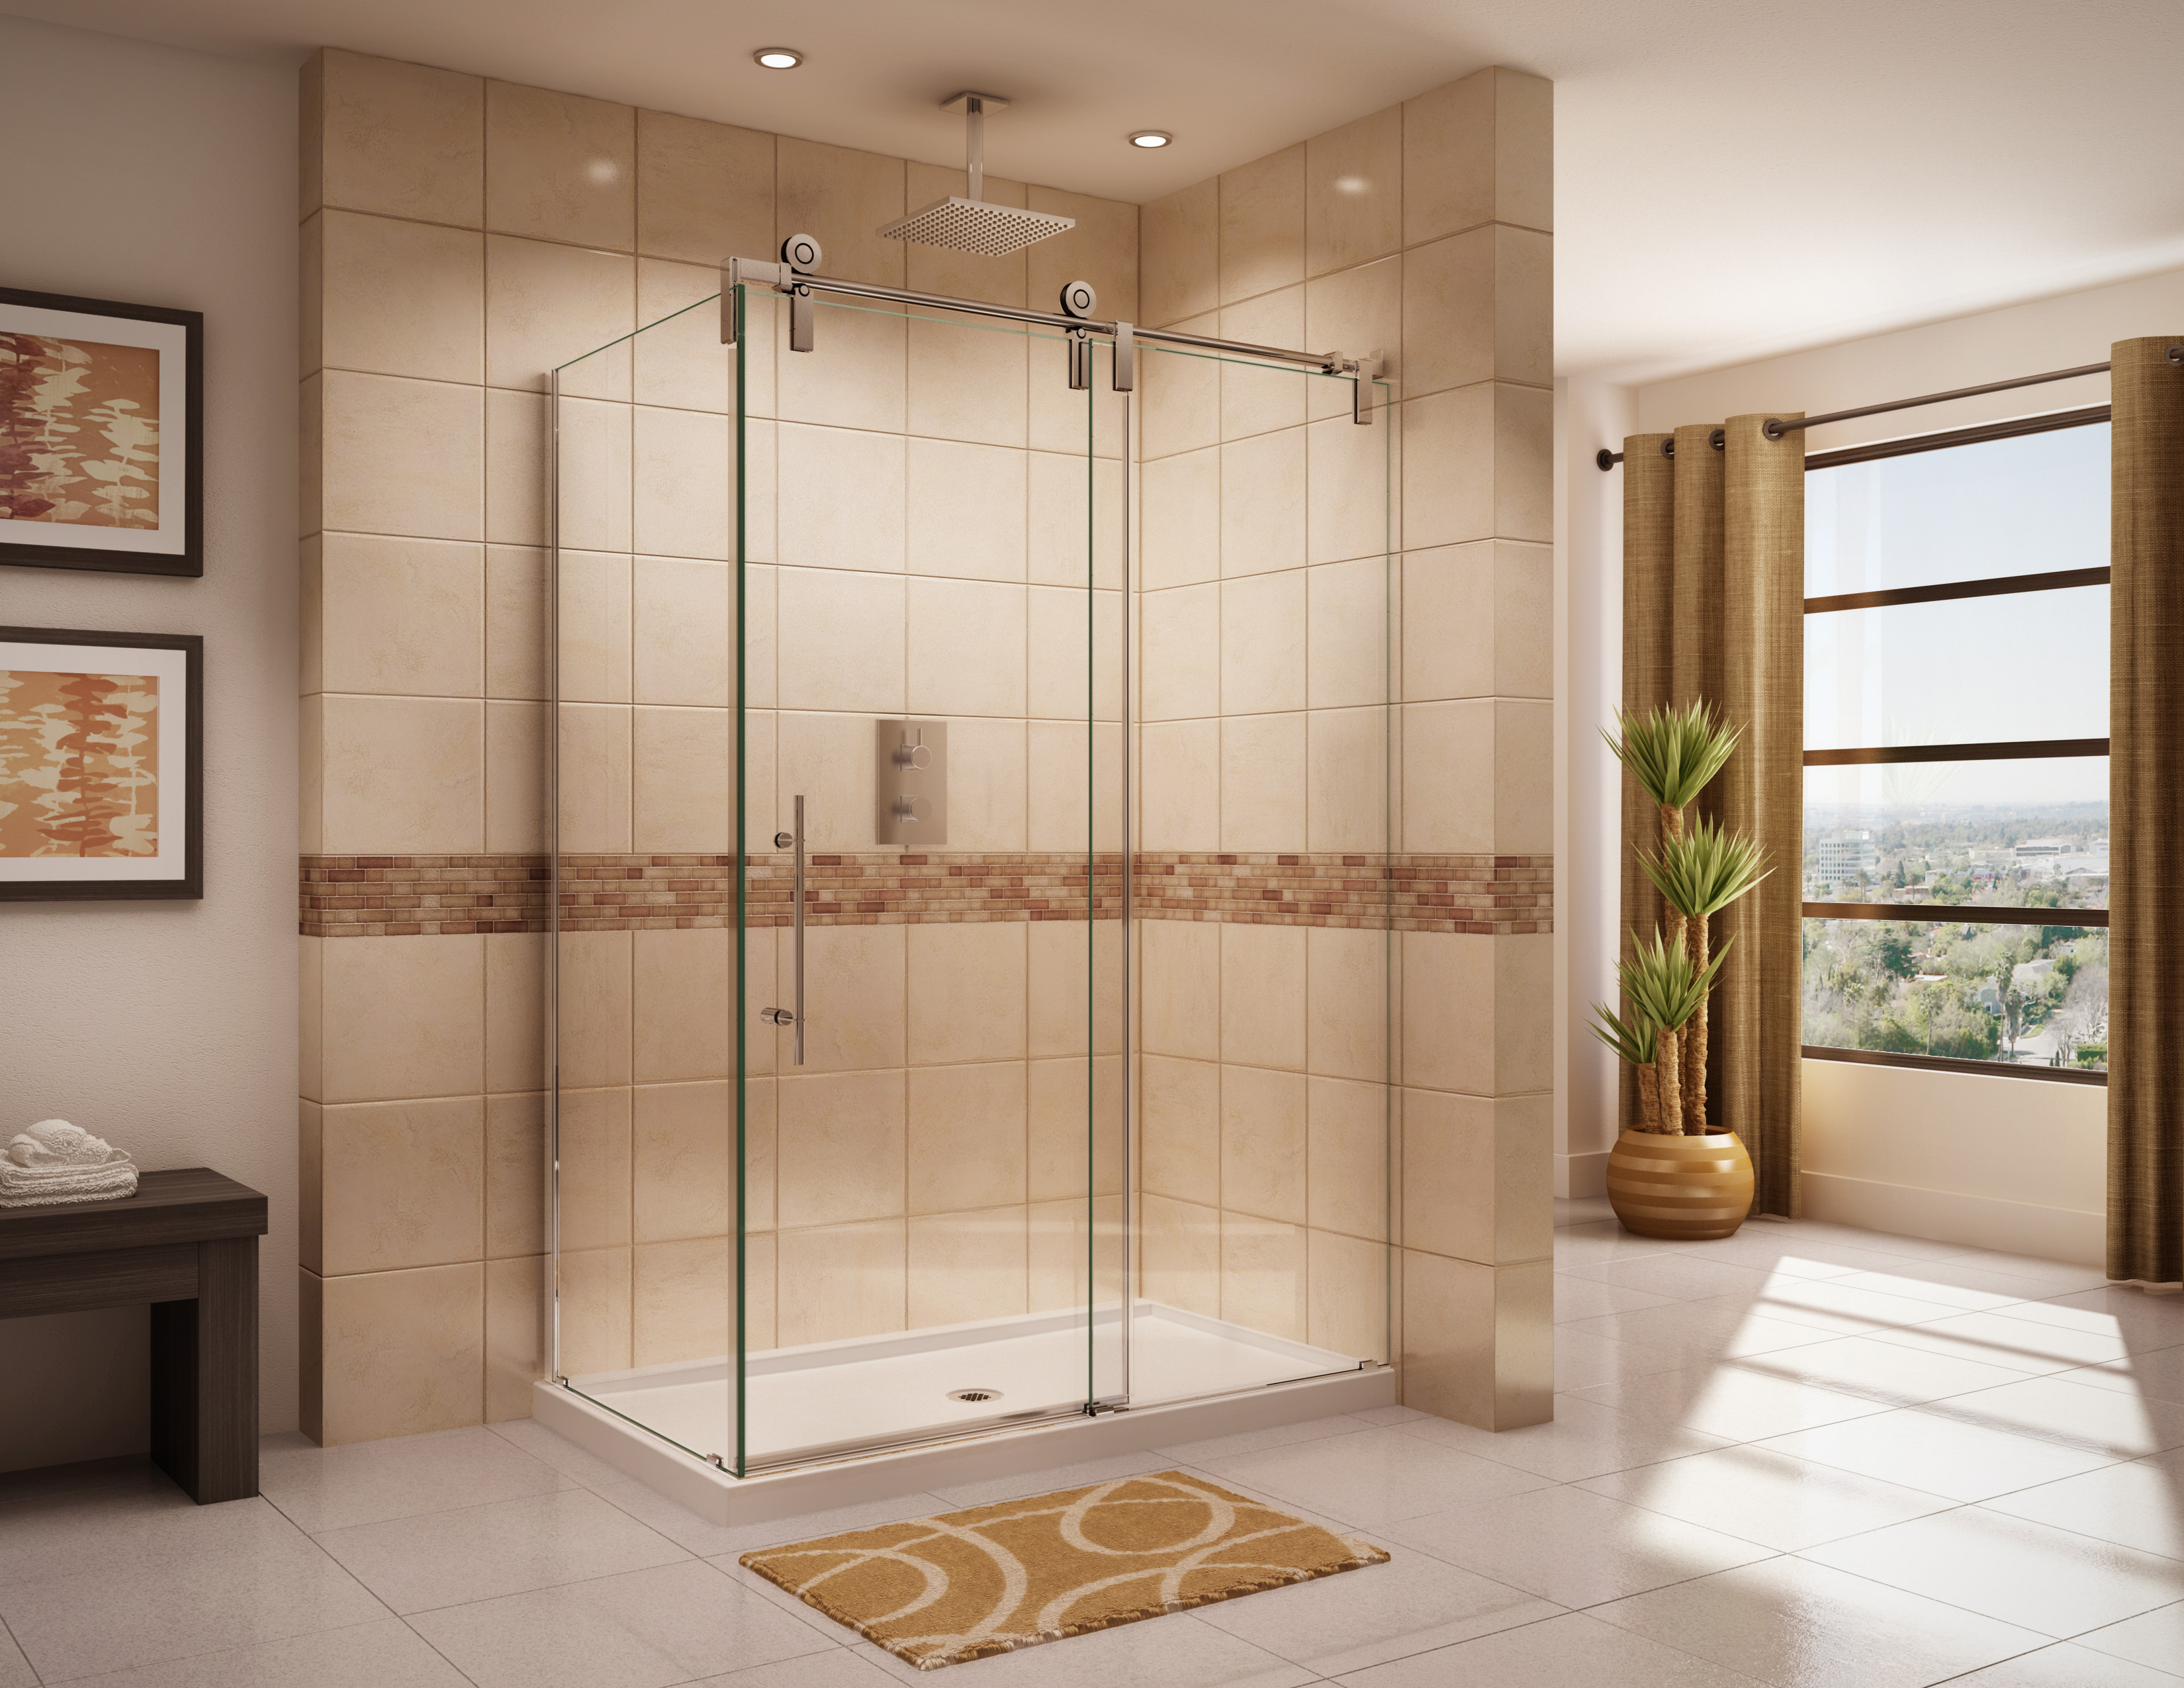 jetta bath kitchen specials fleurco shower doors. Black Bedroom Furniture Sets. Home Design Ideas